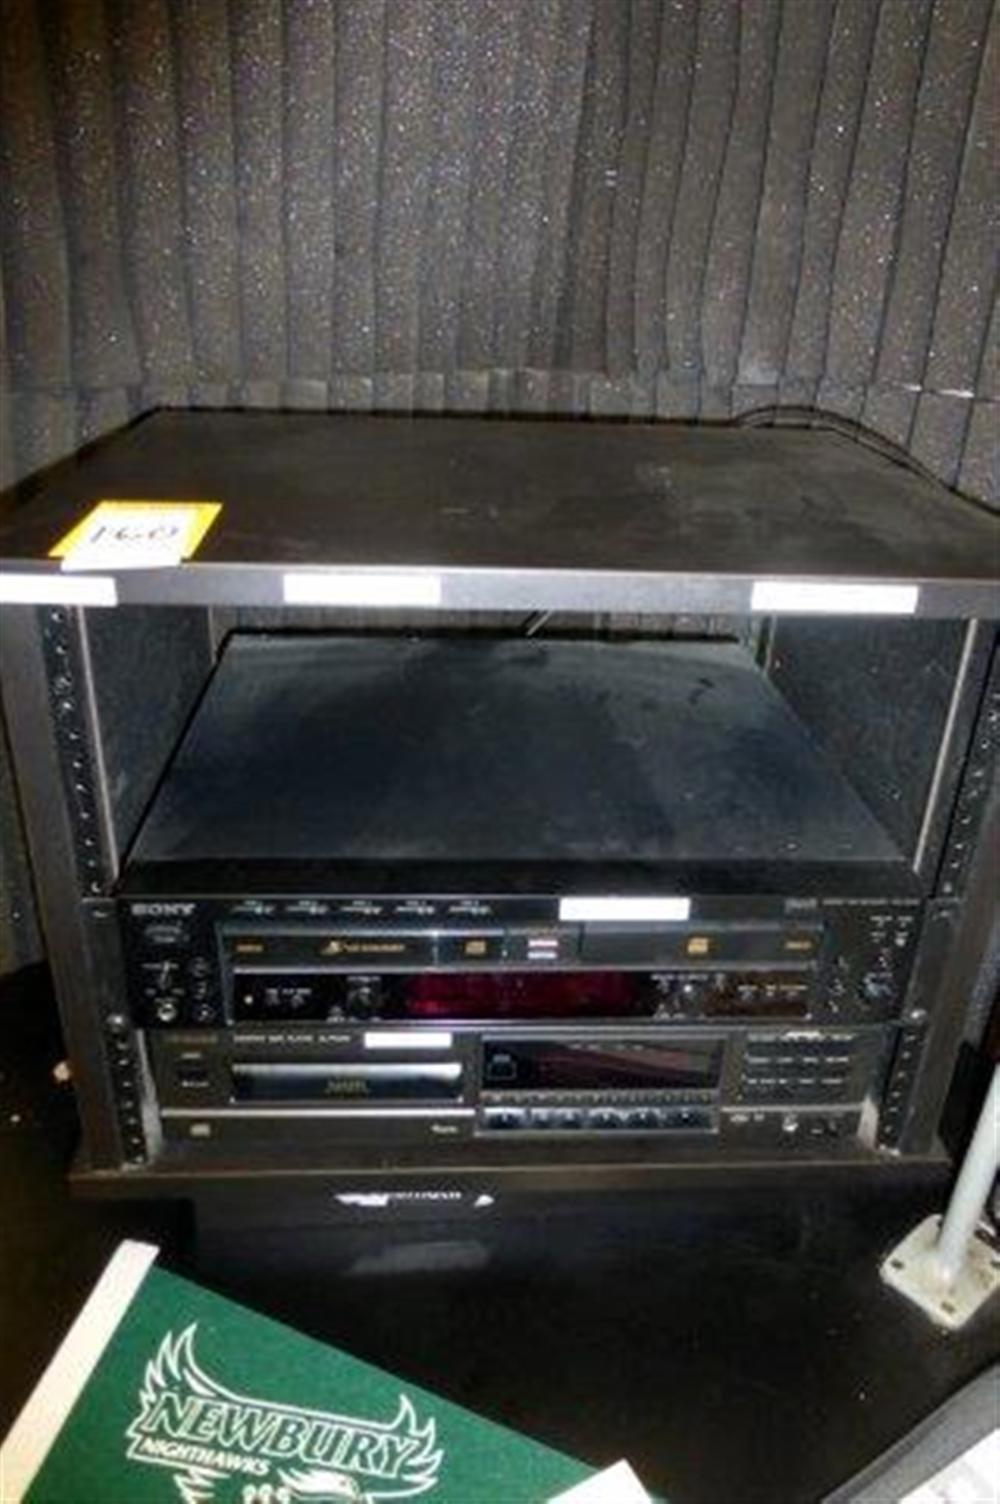 LOT SONY CD RECORDER, TECHNICS ROTARY CHANGER, LPB AUDIO COMPRESSOR